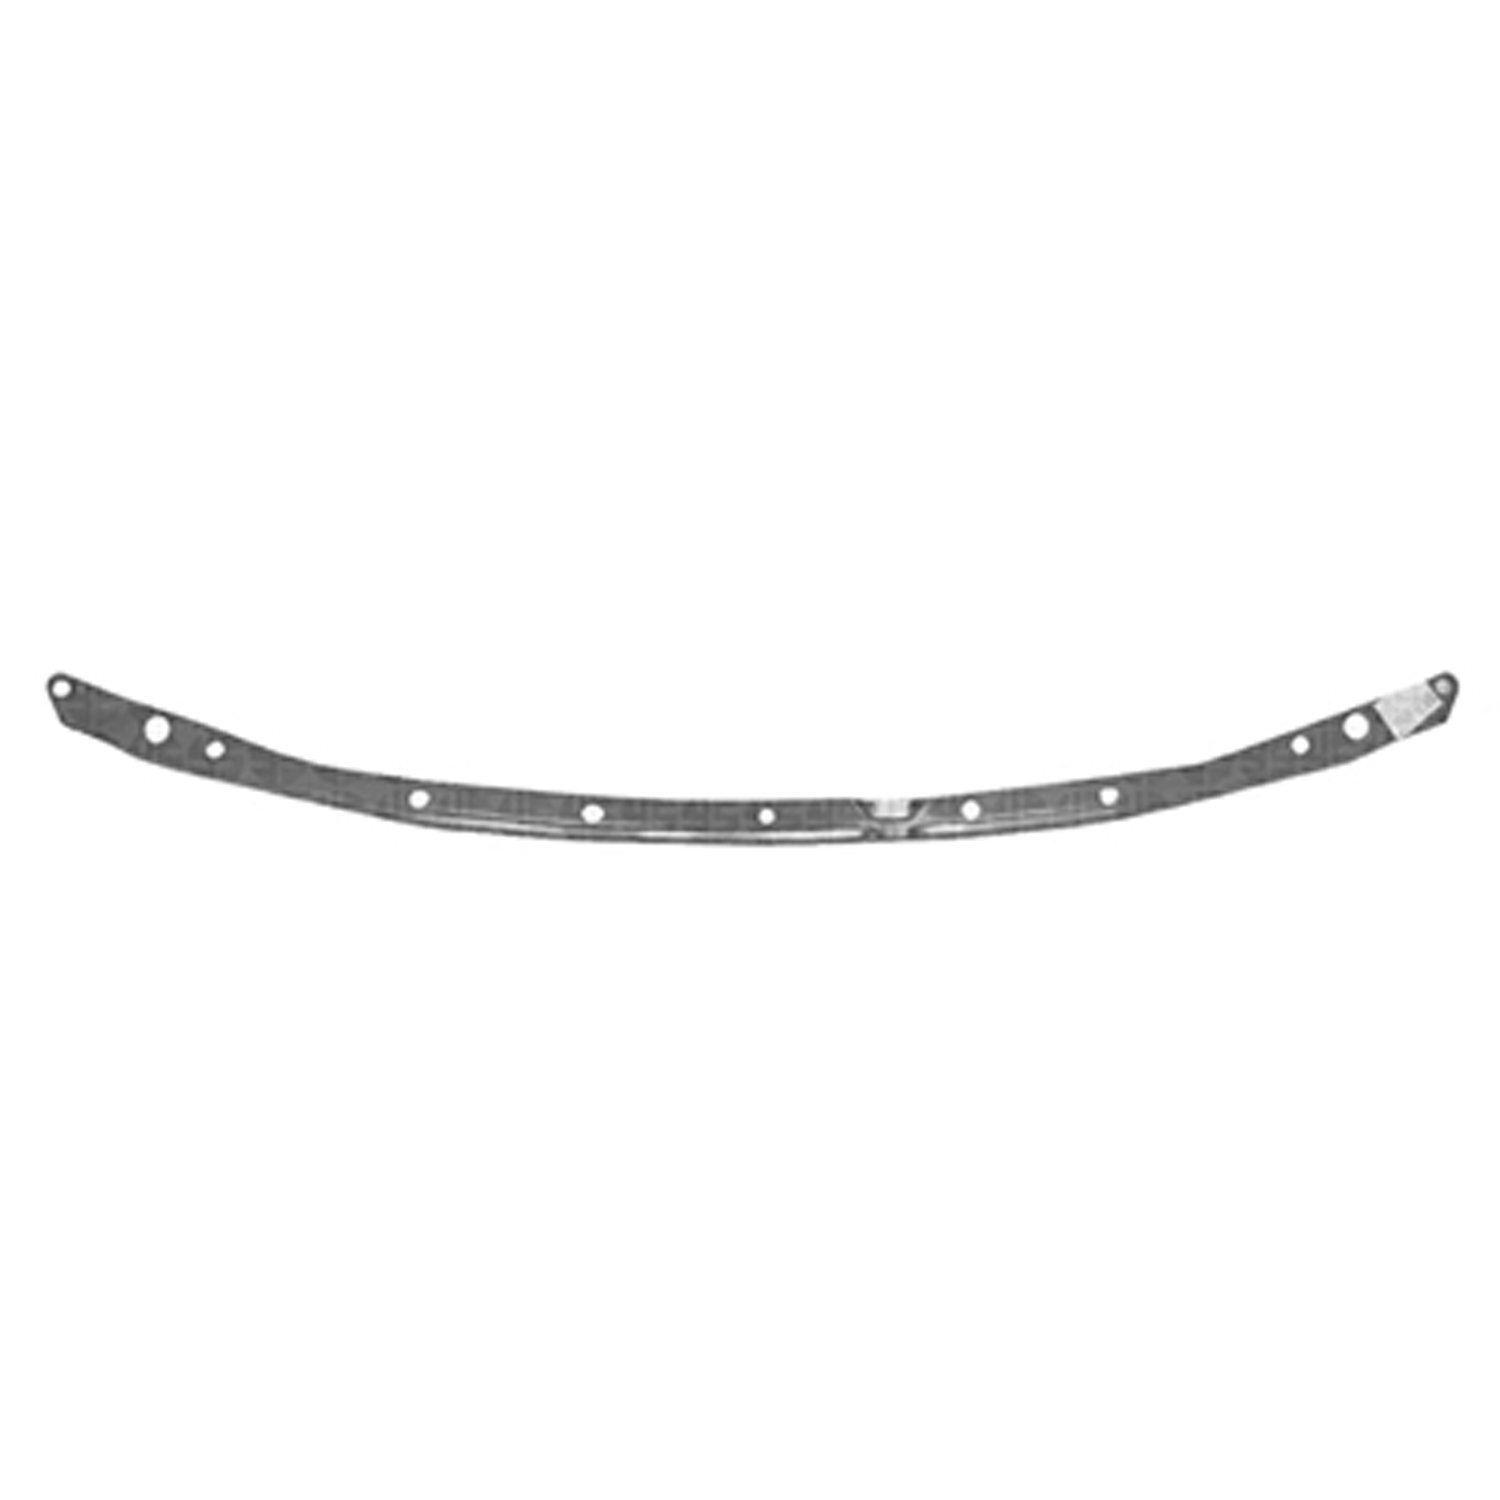 Crash Parts Plus Crash Parts Plus Front Bumper Reinforcement Upper for 1994-2001 Acura Integra